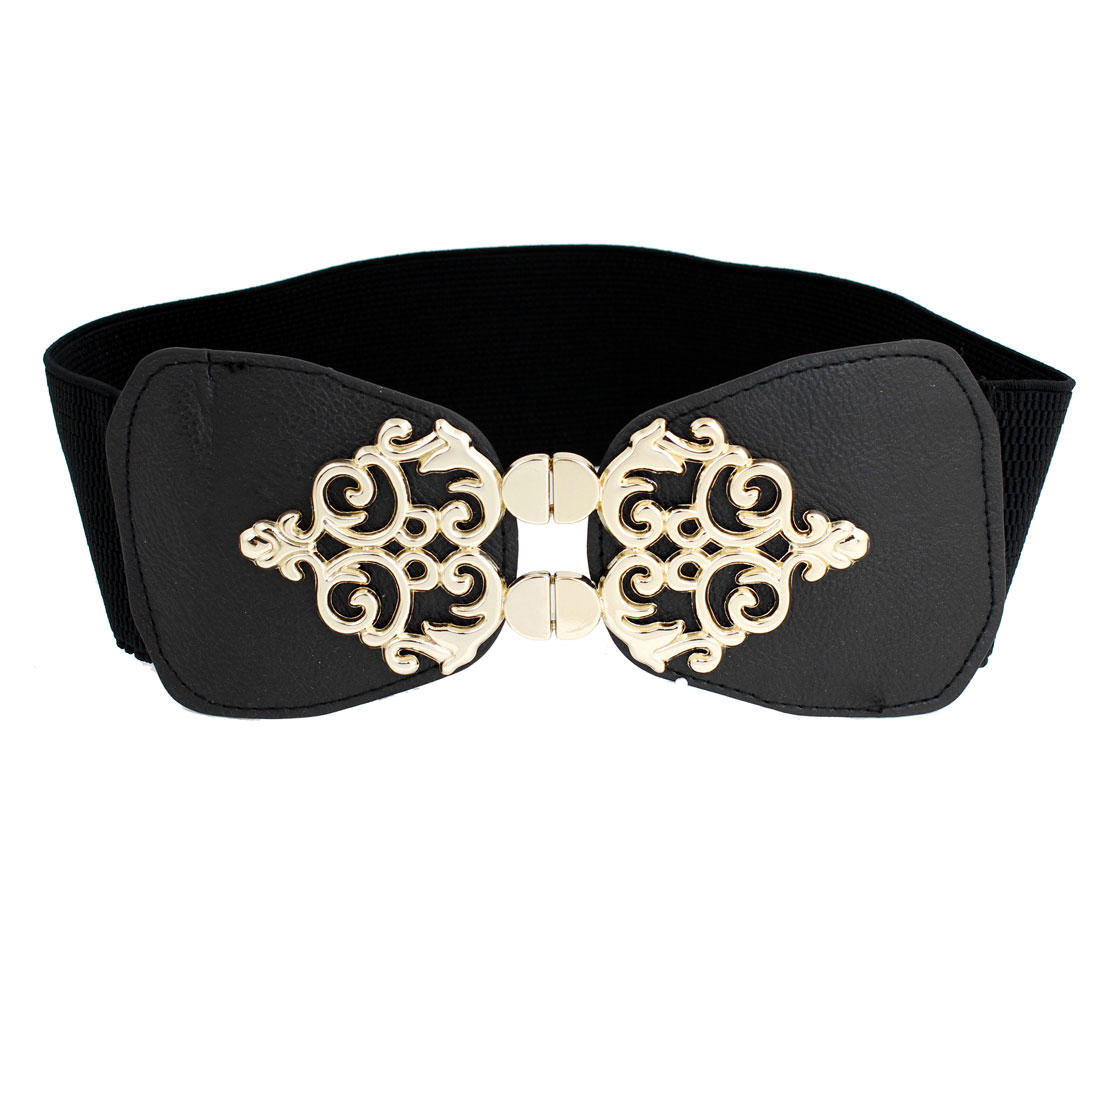 Metal Floral Design Interlock Buckle Black Elastic Waist Band Belt for Lady